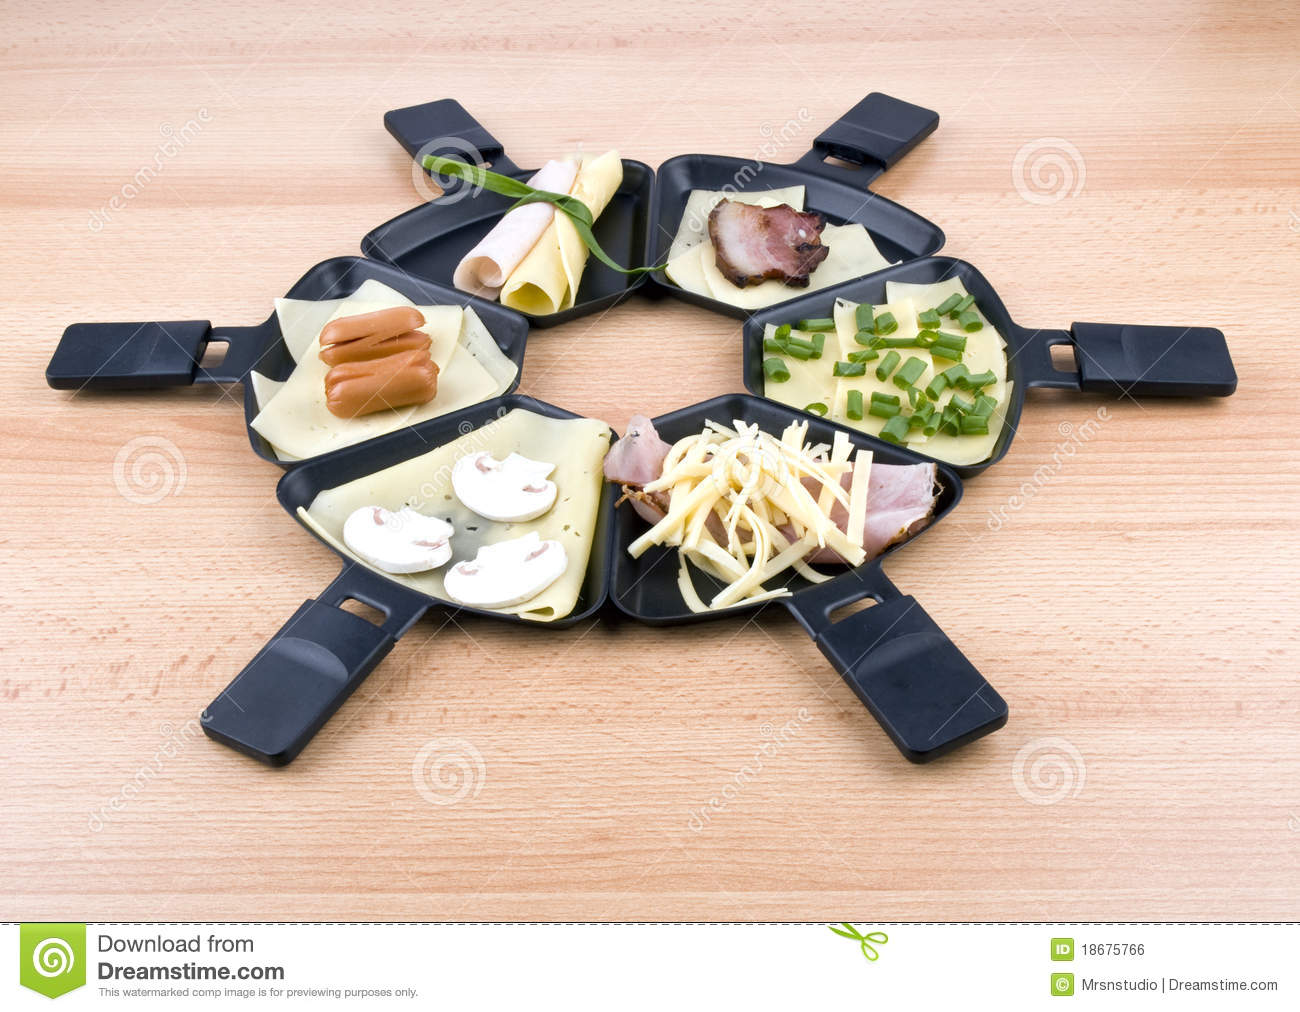 Spring Pizza Raclette 6 Raclette Pans With Food Ideal For Party Royalty Free